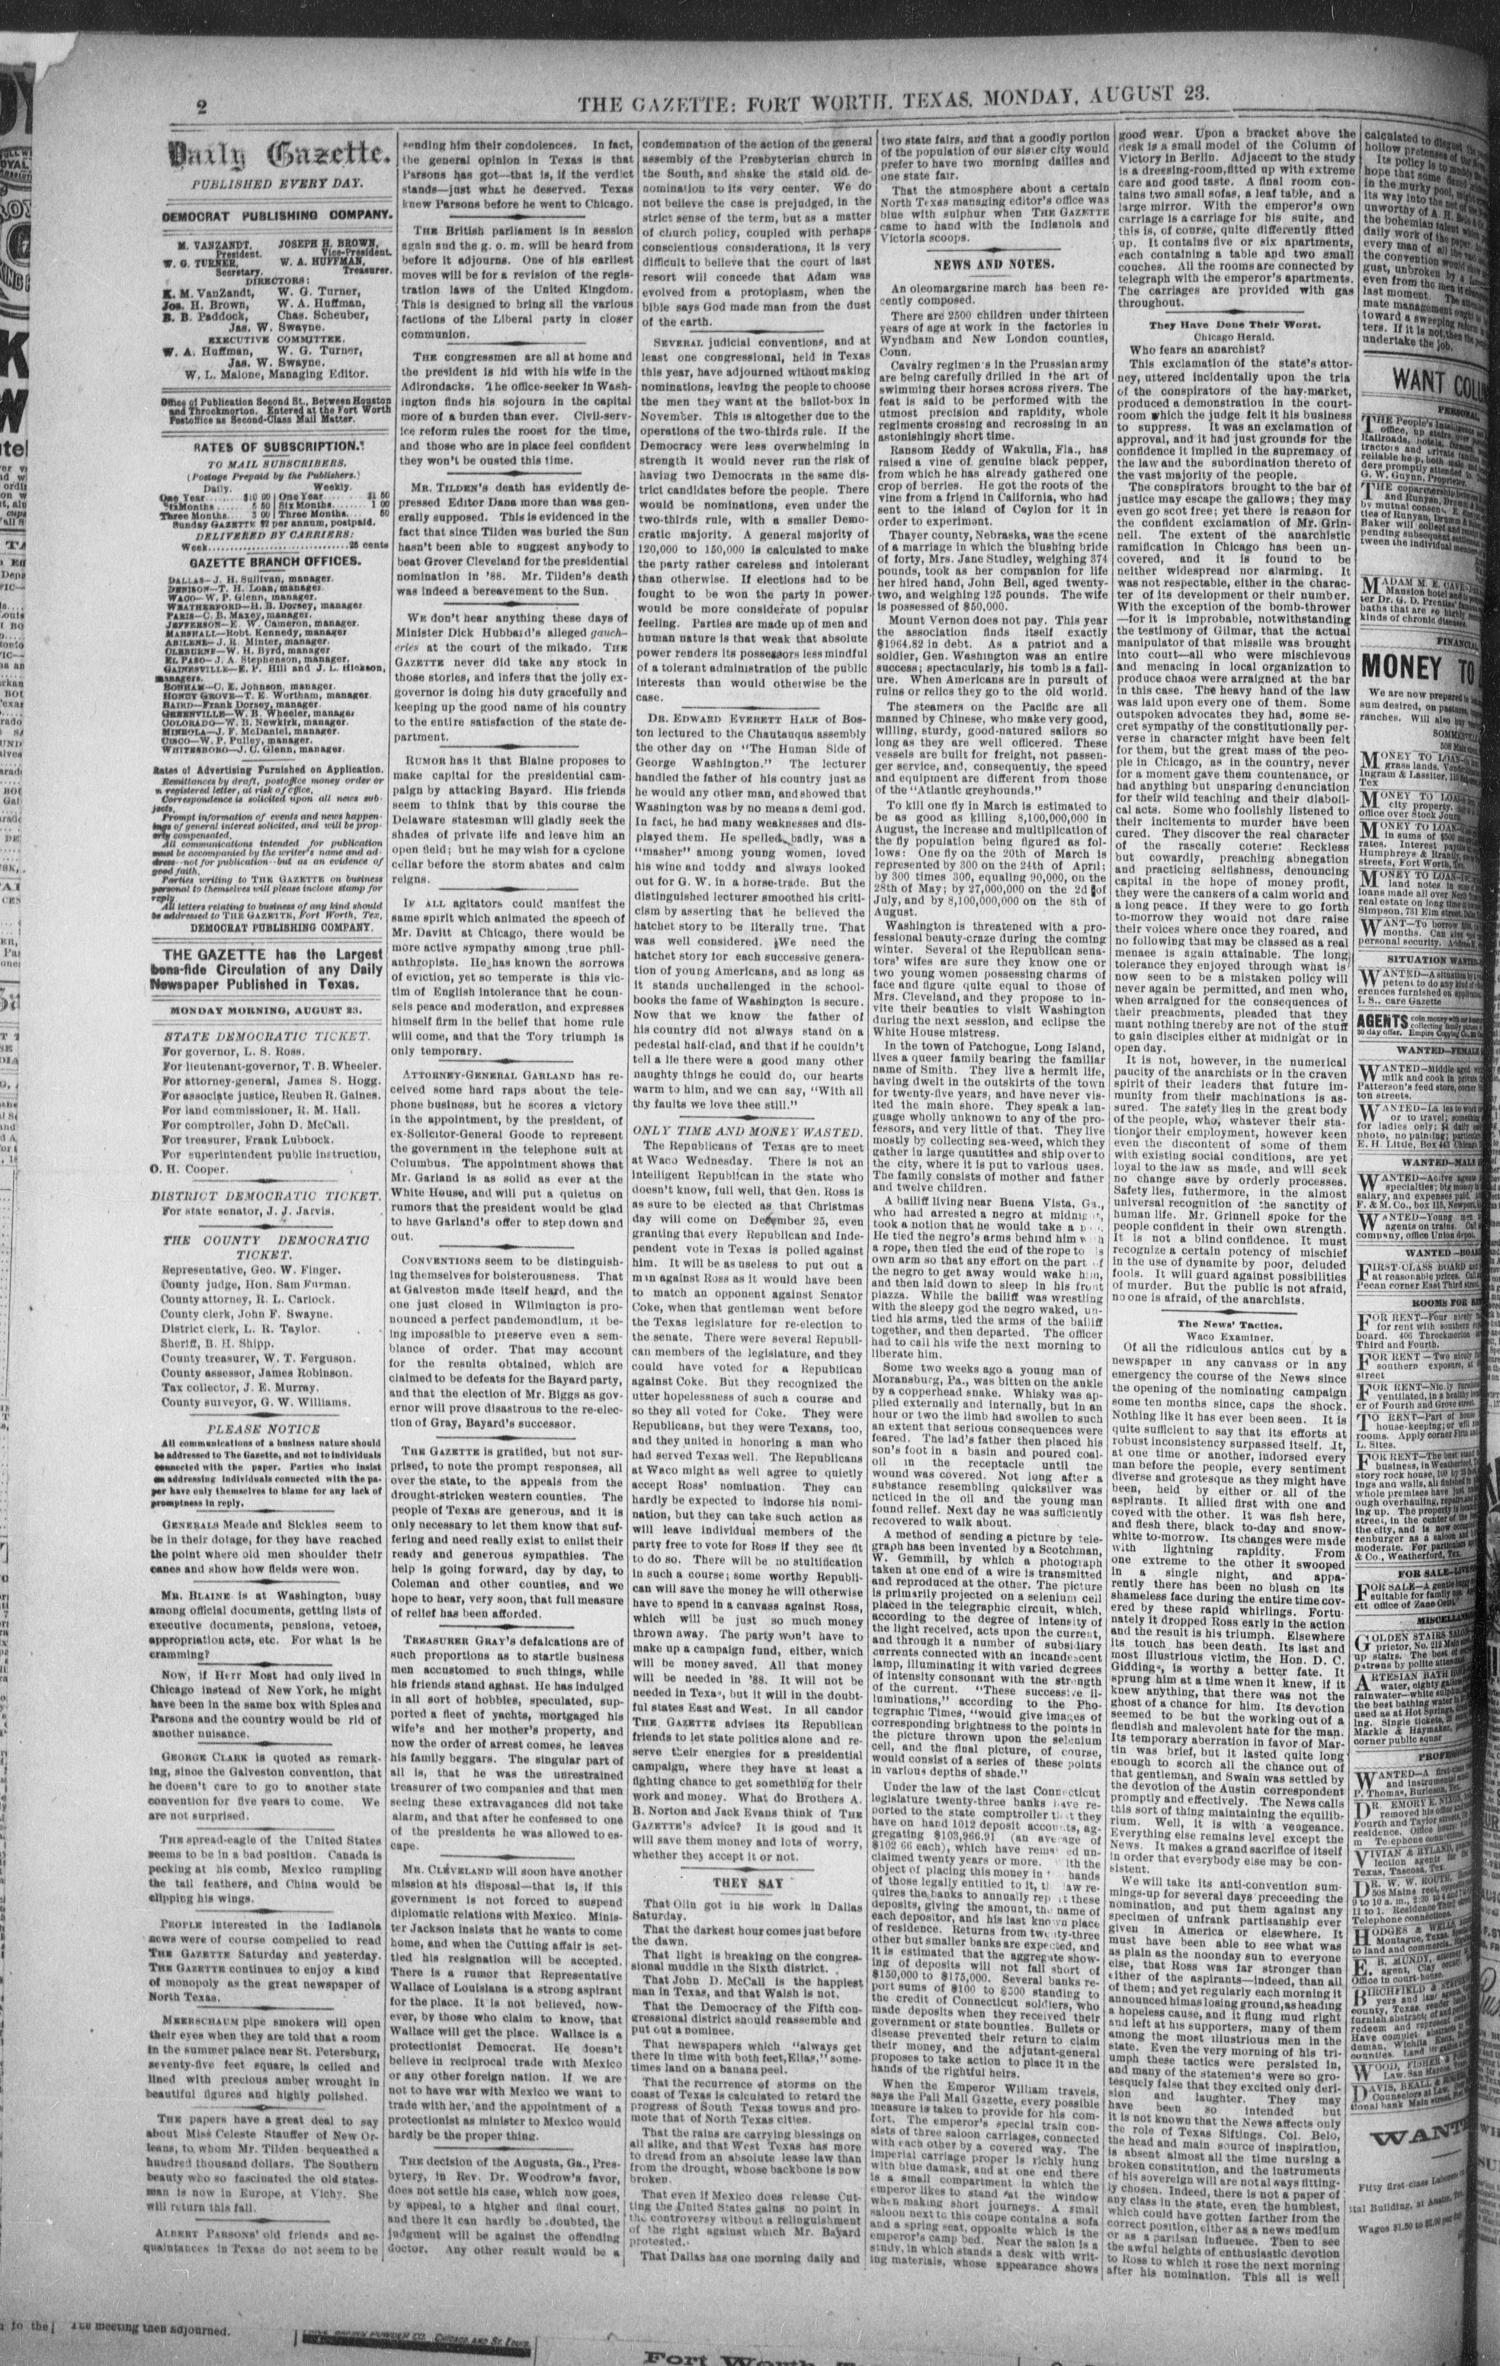 Fort Worth Daily Gazette. (Fort Worth, Tex.), Vol. 12, No. 24, Ed. 1, Monday, August 23, 1886                                                                                                      [Sequence #]: 2 of 8